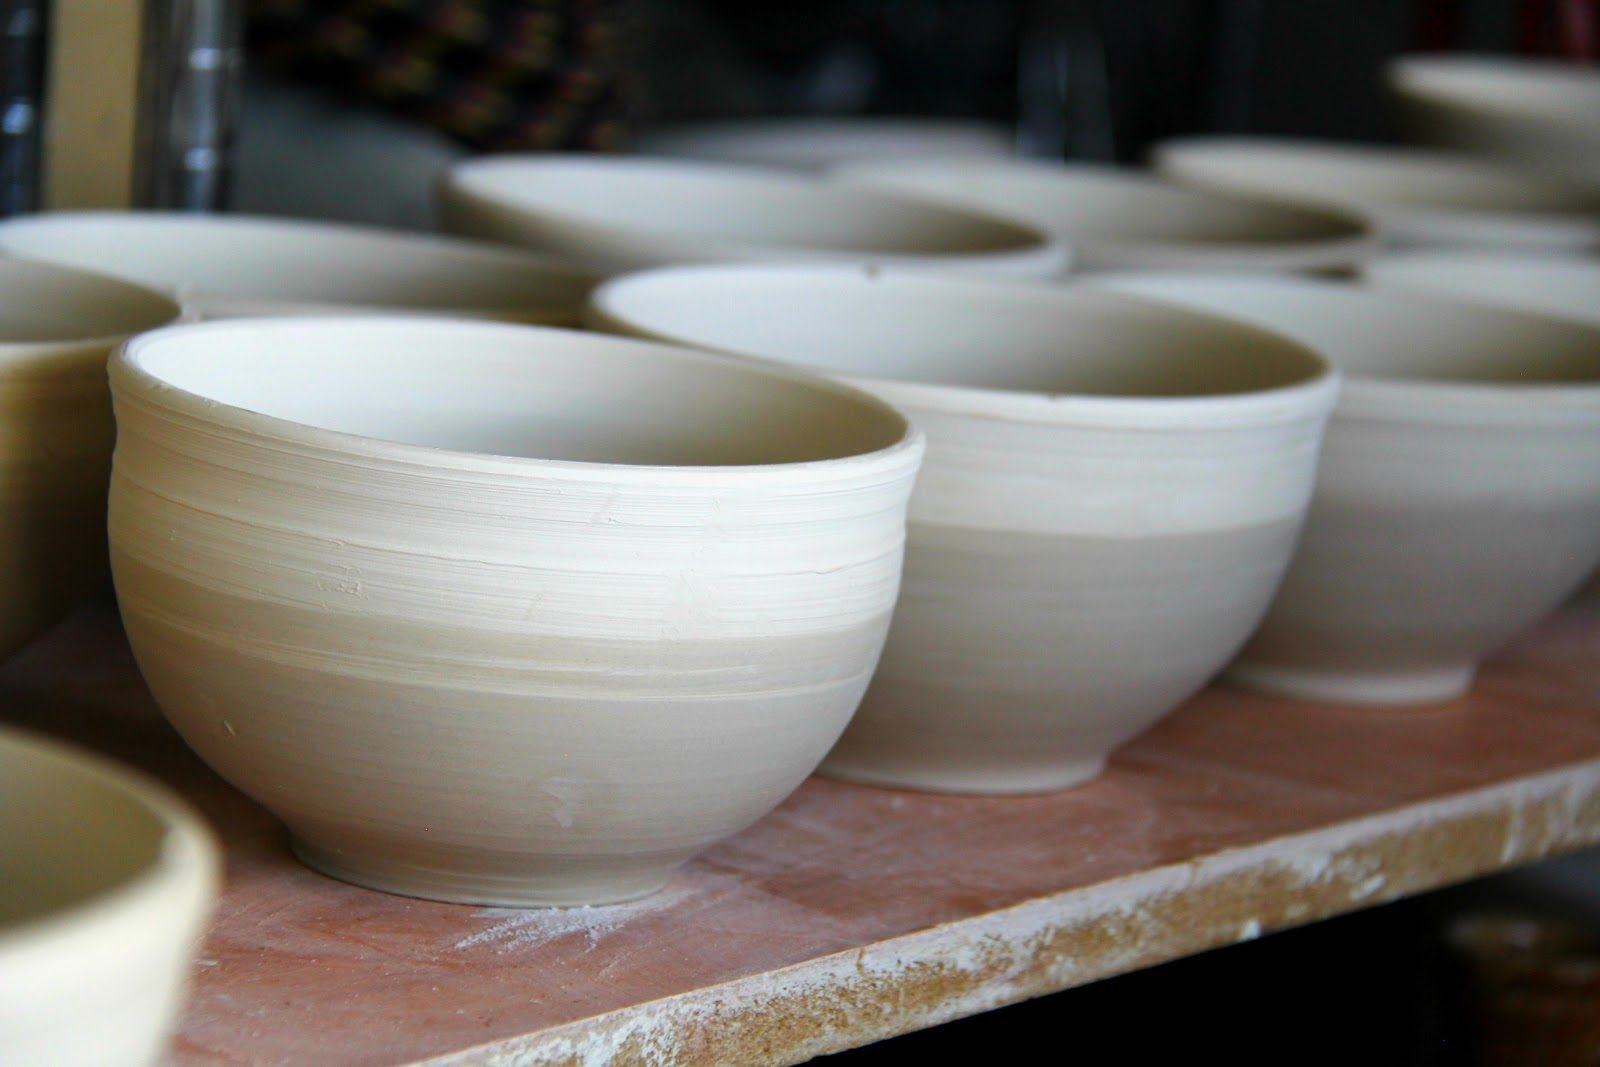 Japanese pots made in St Ives